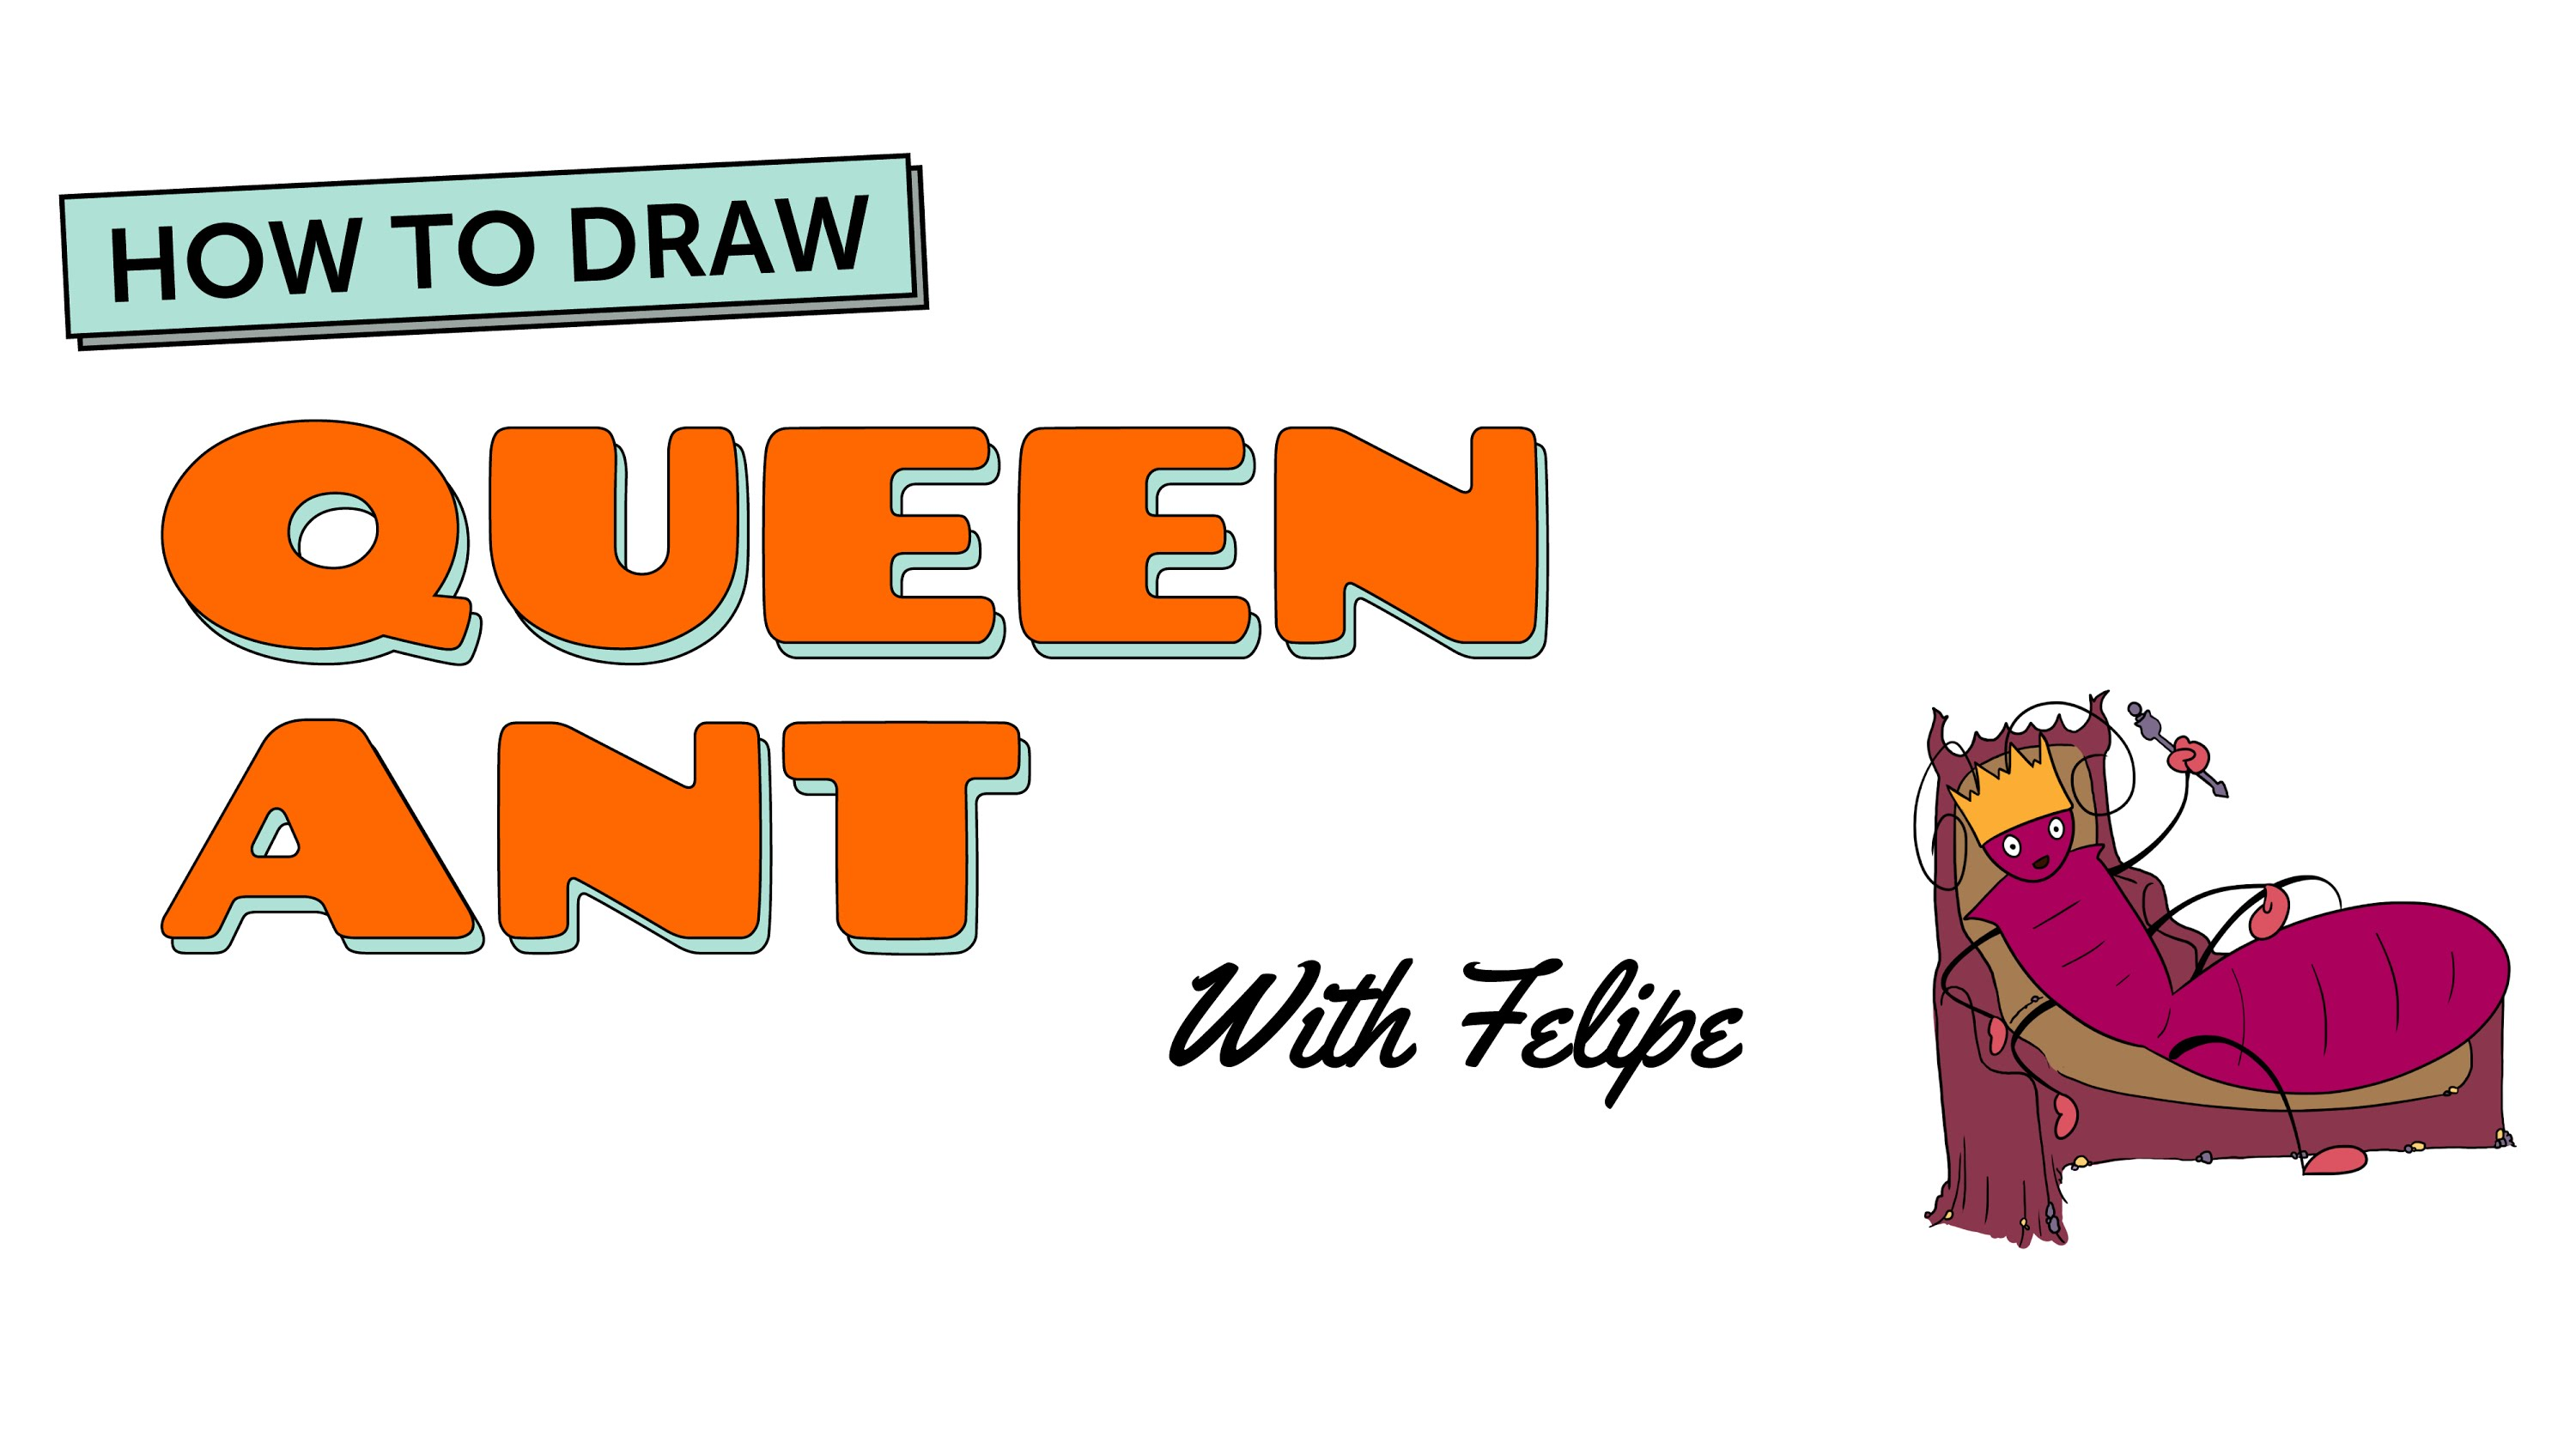 3000x1688 How To Draw A Cartoon Ant Queen Ant